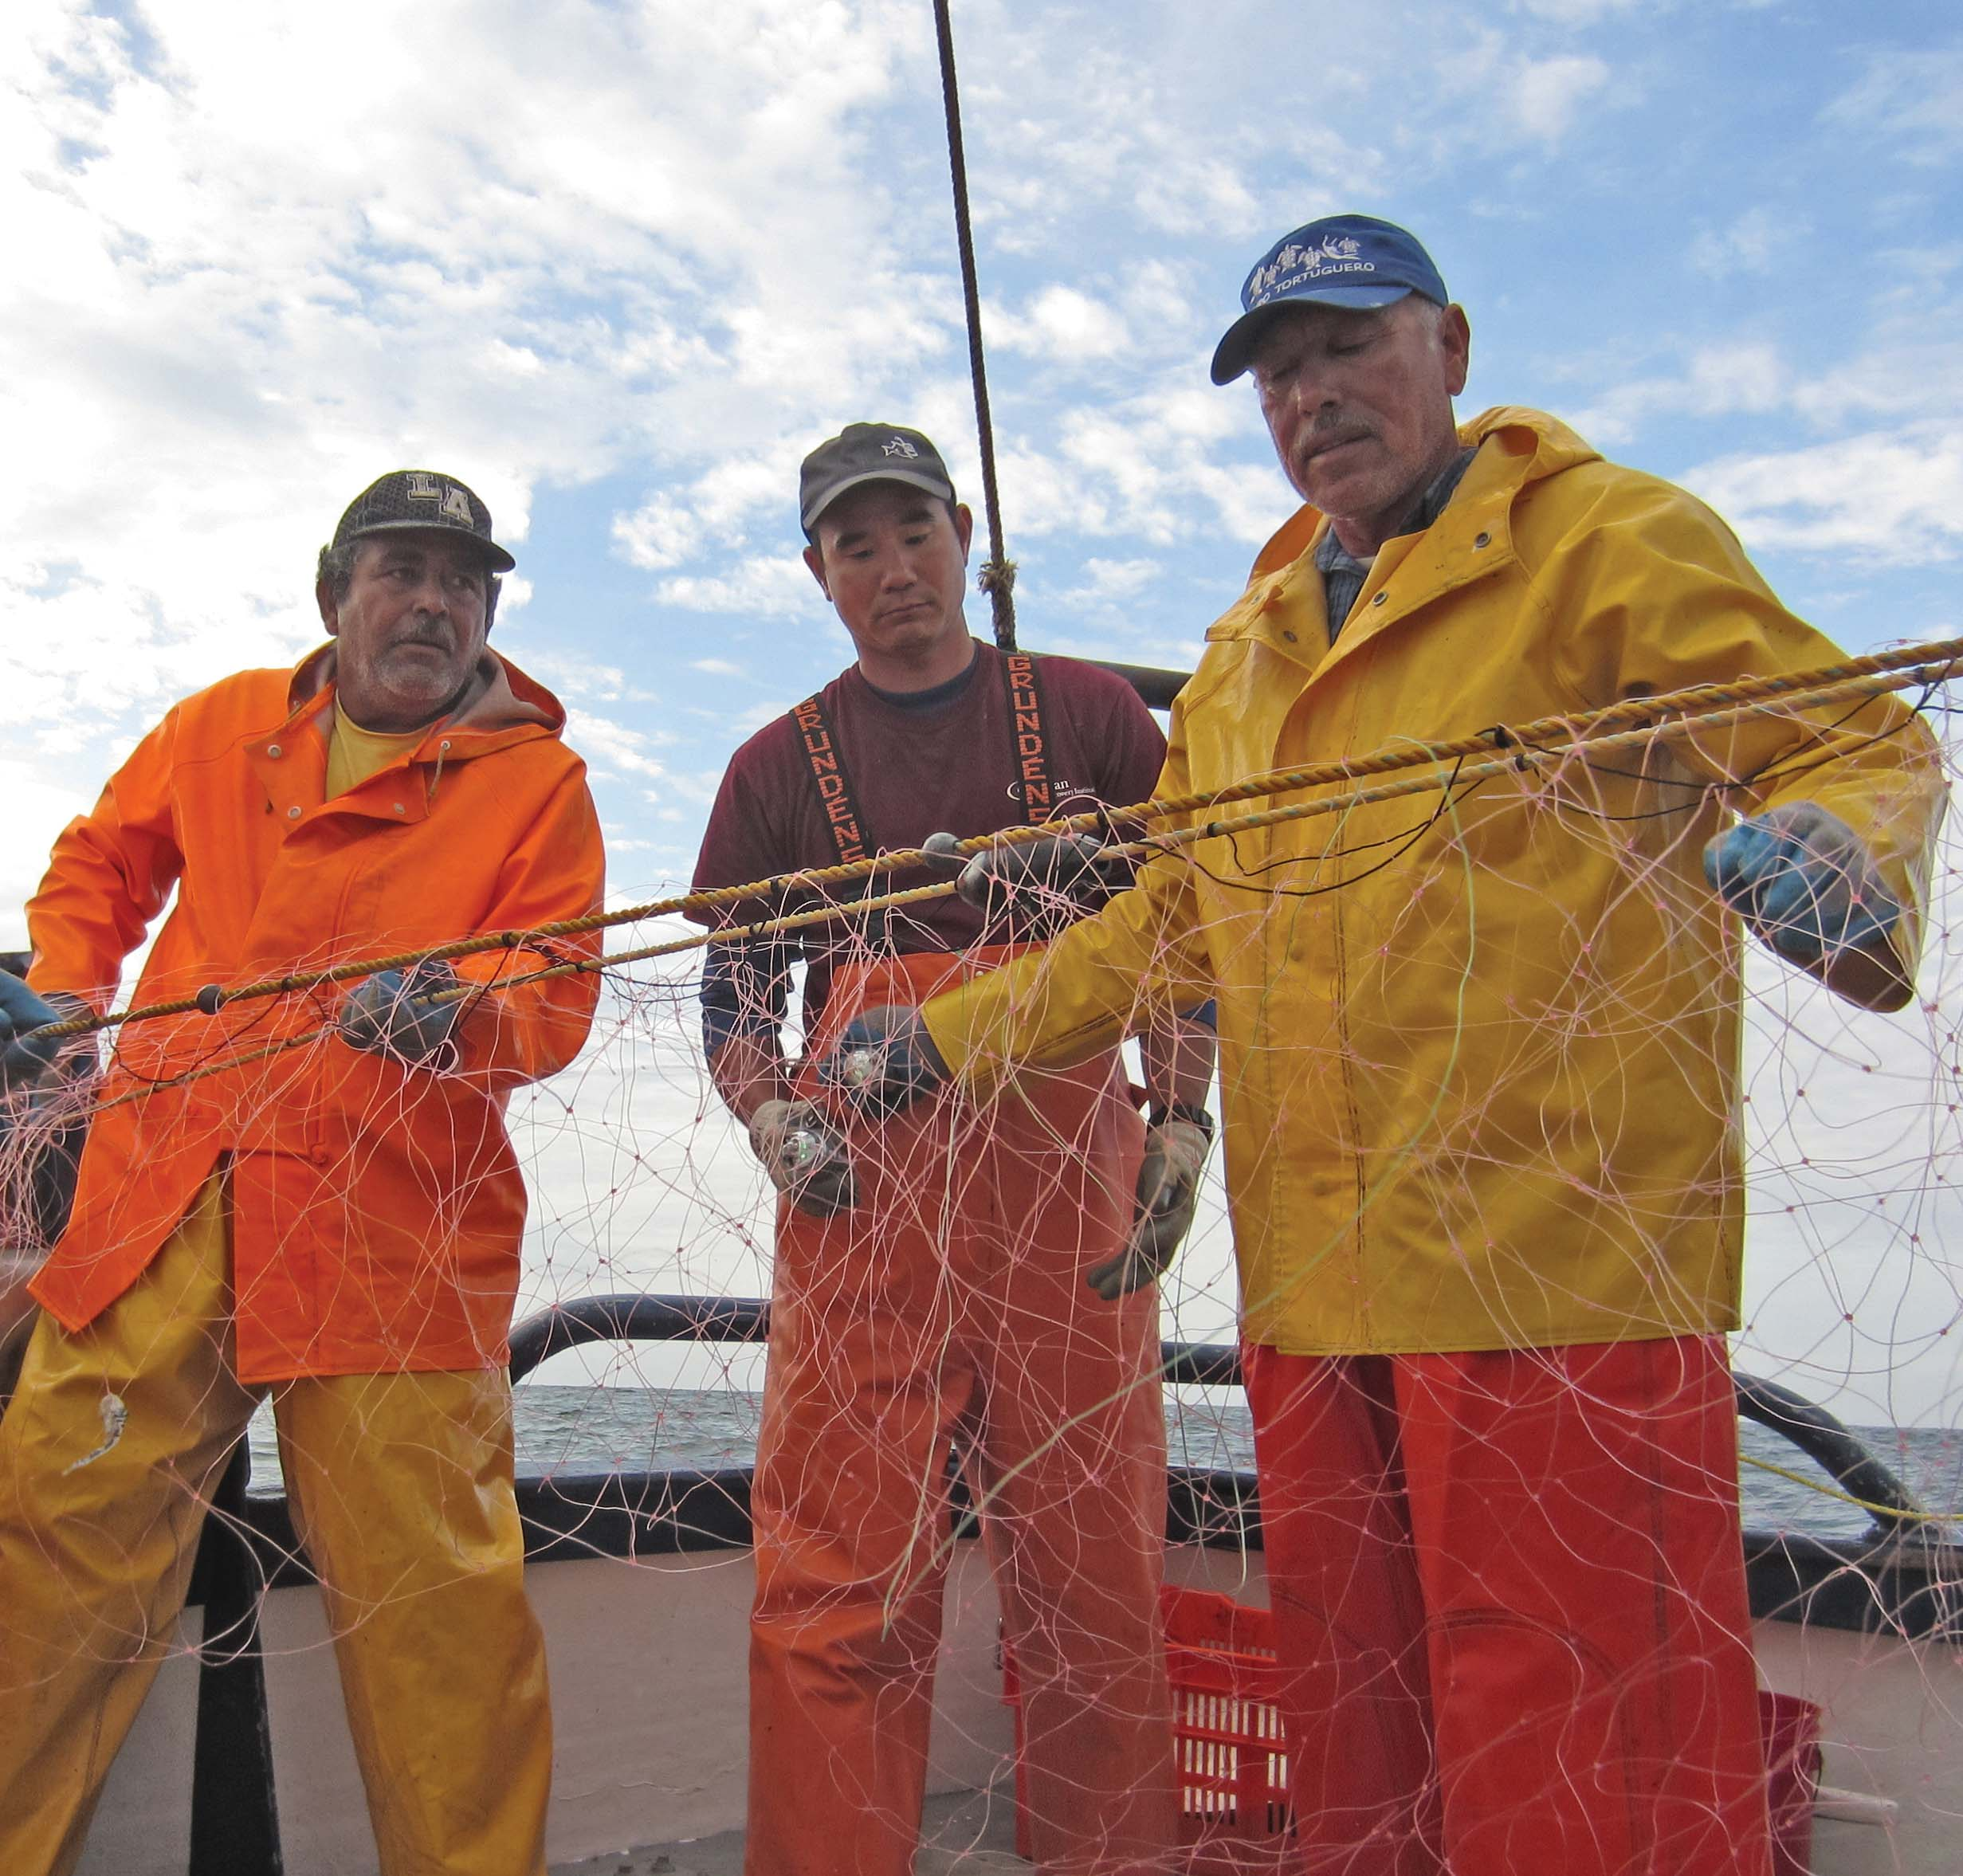 Researchers and fishermen collaborate in Mexico to test the use of lightsticks on gillnets to reduce turtle bycatch. © John Wang